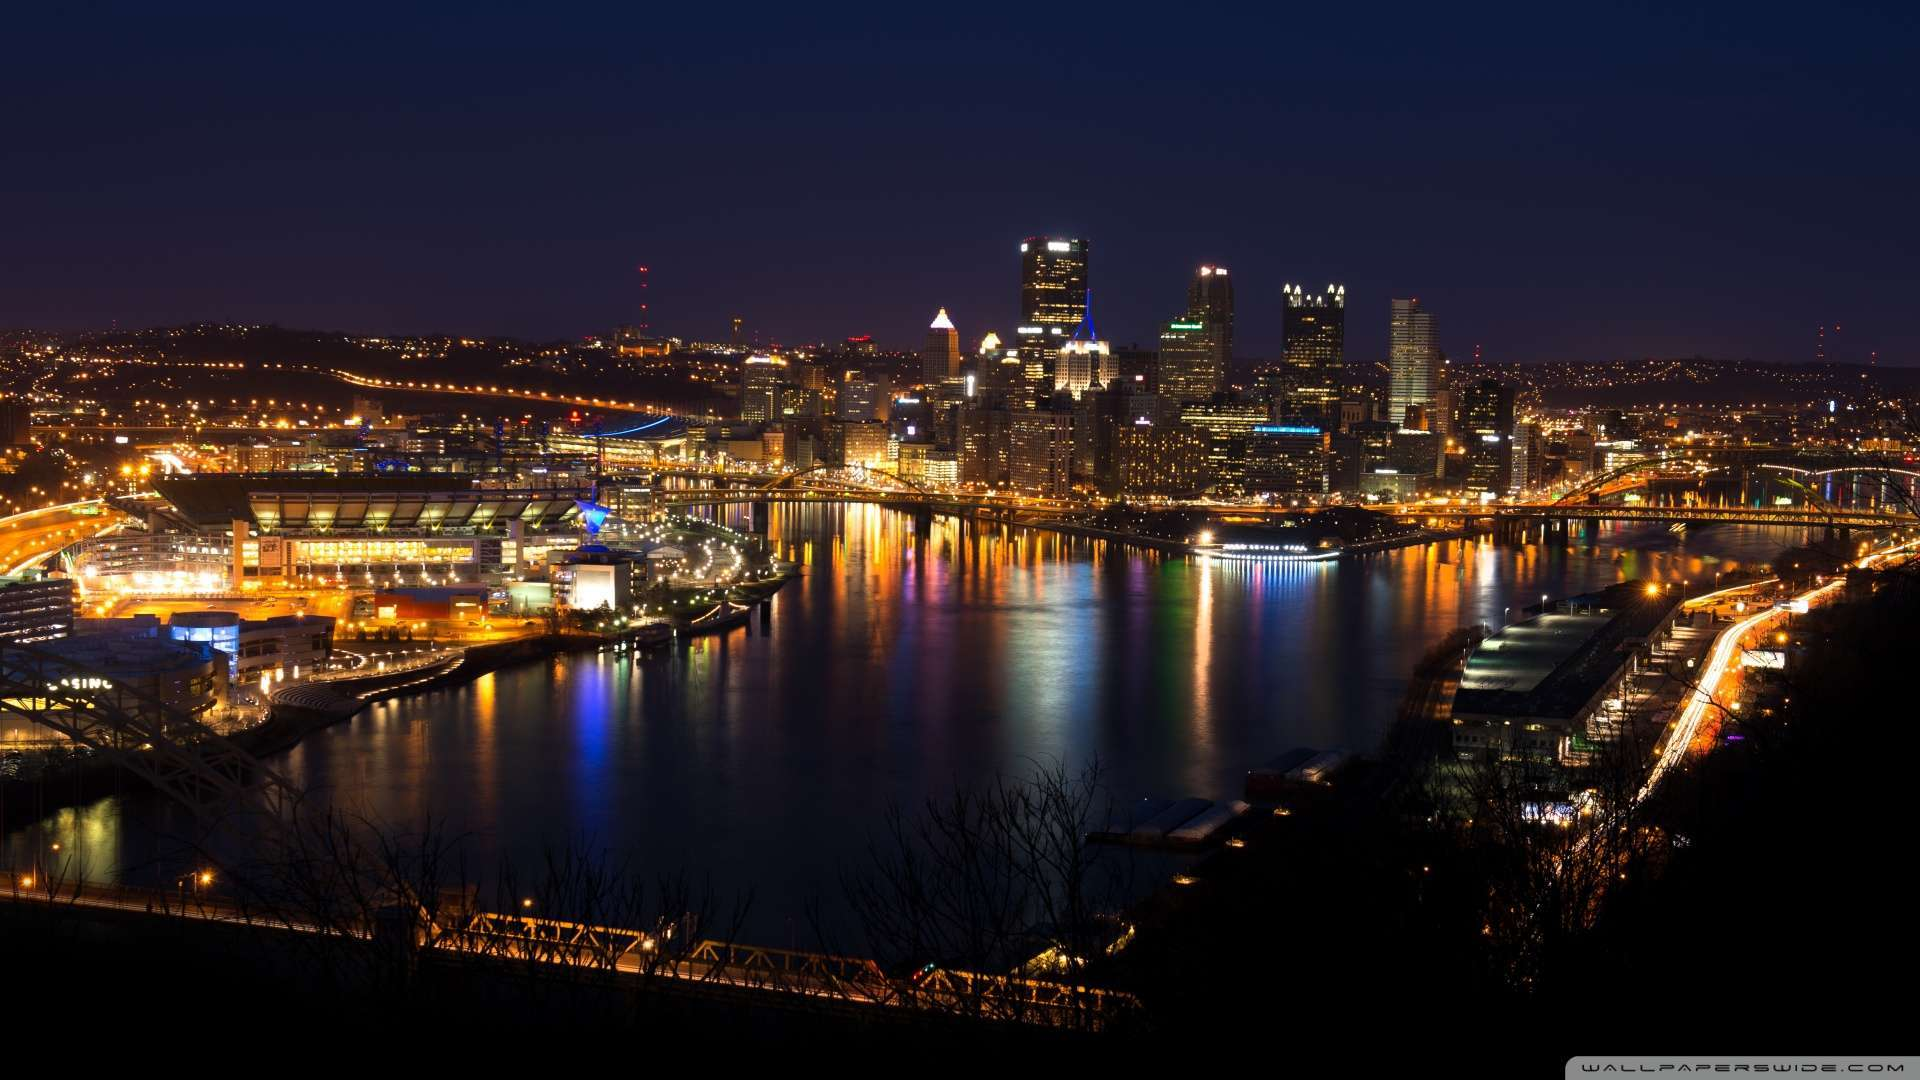 Wallpaper Pittsburgh Skyline Wallpaper 1080p HD Upload at January 4 1920x1080